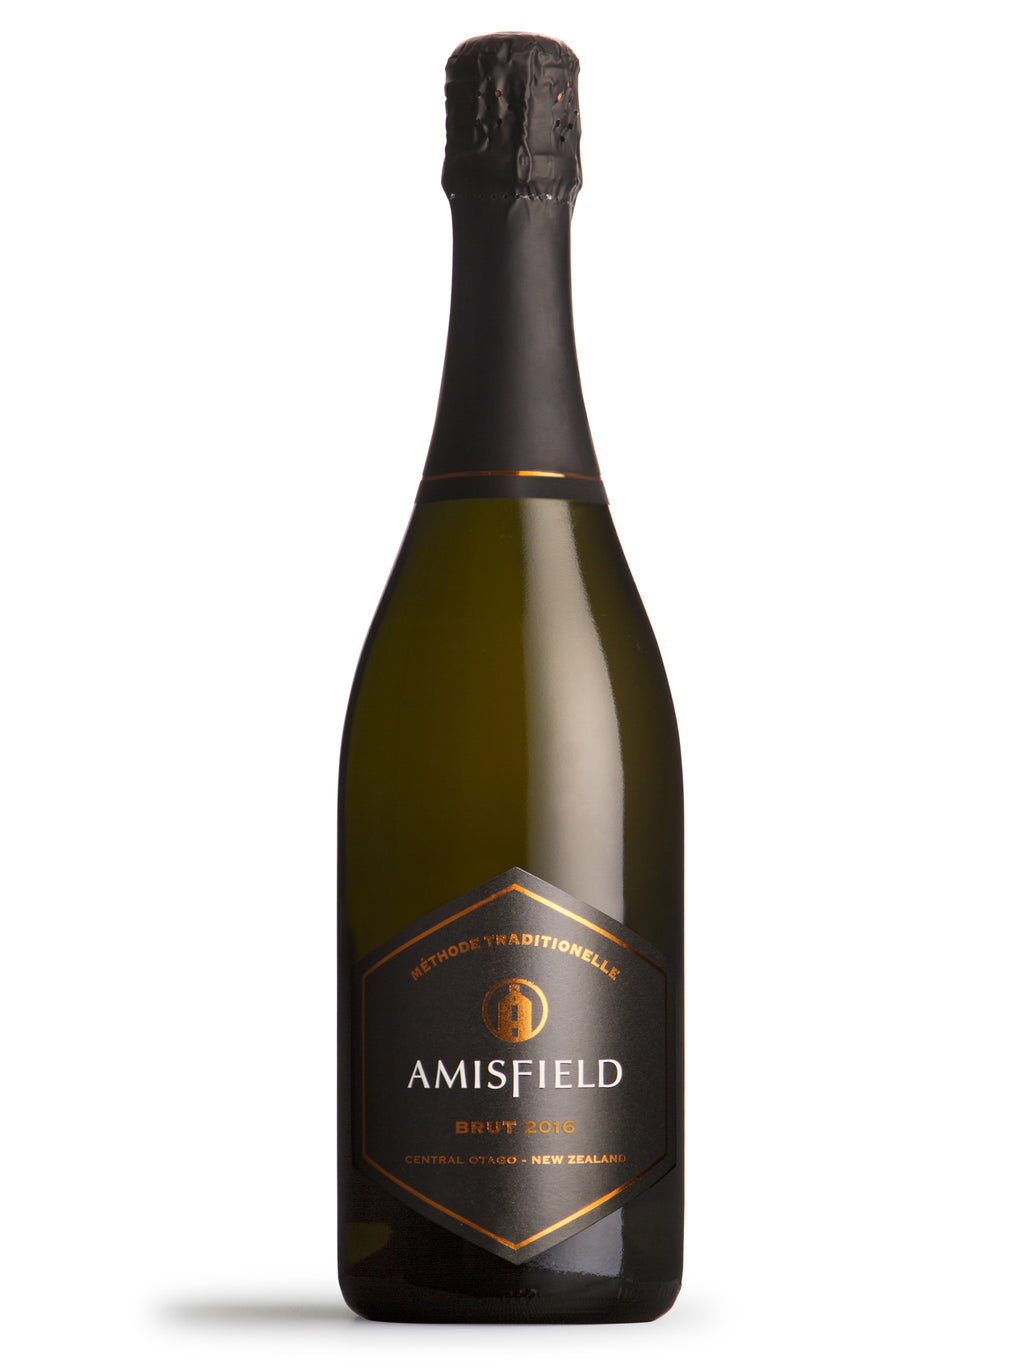 Sparkling Wine, Methode Traditionelle, Brut, 2016, Central Otago Sparkling Wine, Central Otago, New Zealand Wine, New Zealand Wine Shop, Online Wine Shop, Amisfield Brut 2016, Amisfield Sparkling Wine.